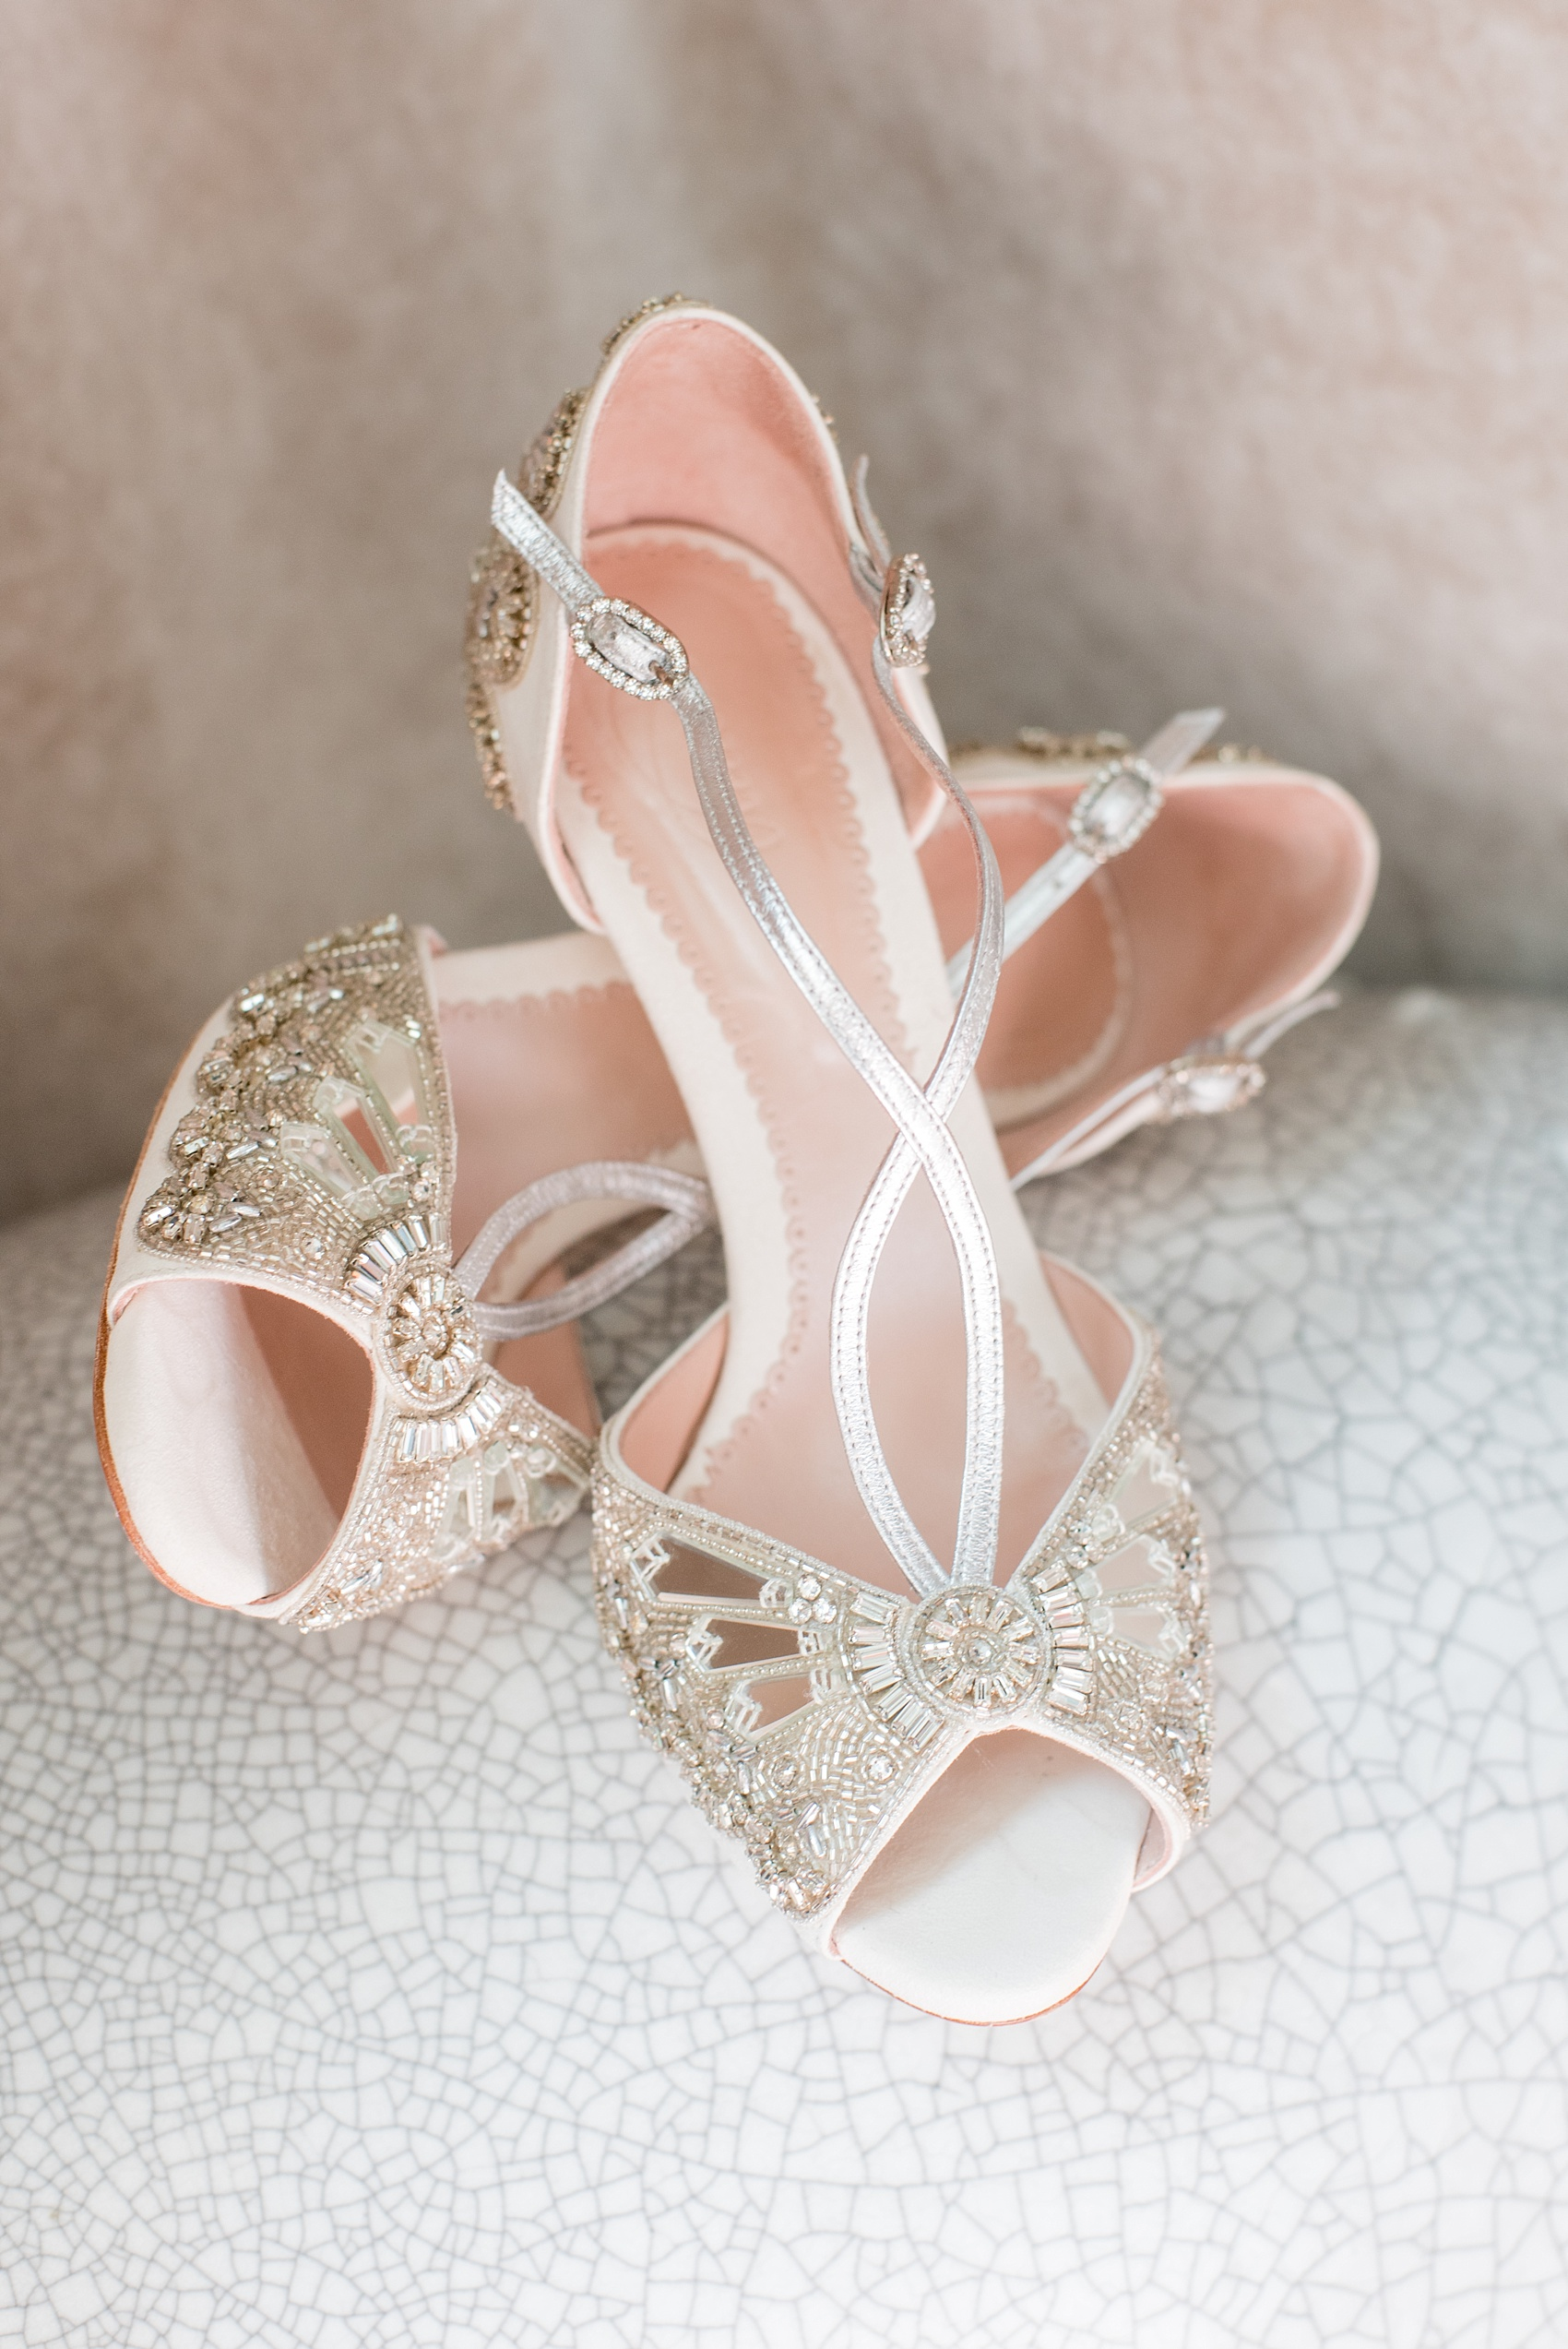 Mikkel Paige Photography captures a luxury wedding in NYC. Detail image of the bride's Emmy London mirrored and silver beaded wedding shoes.